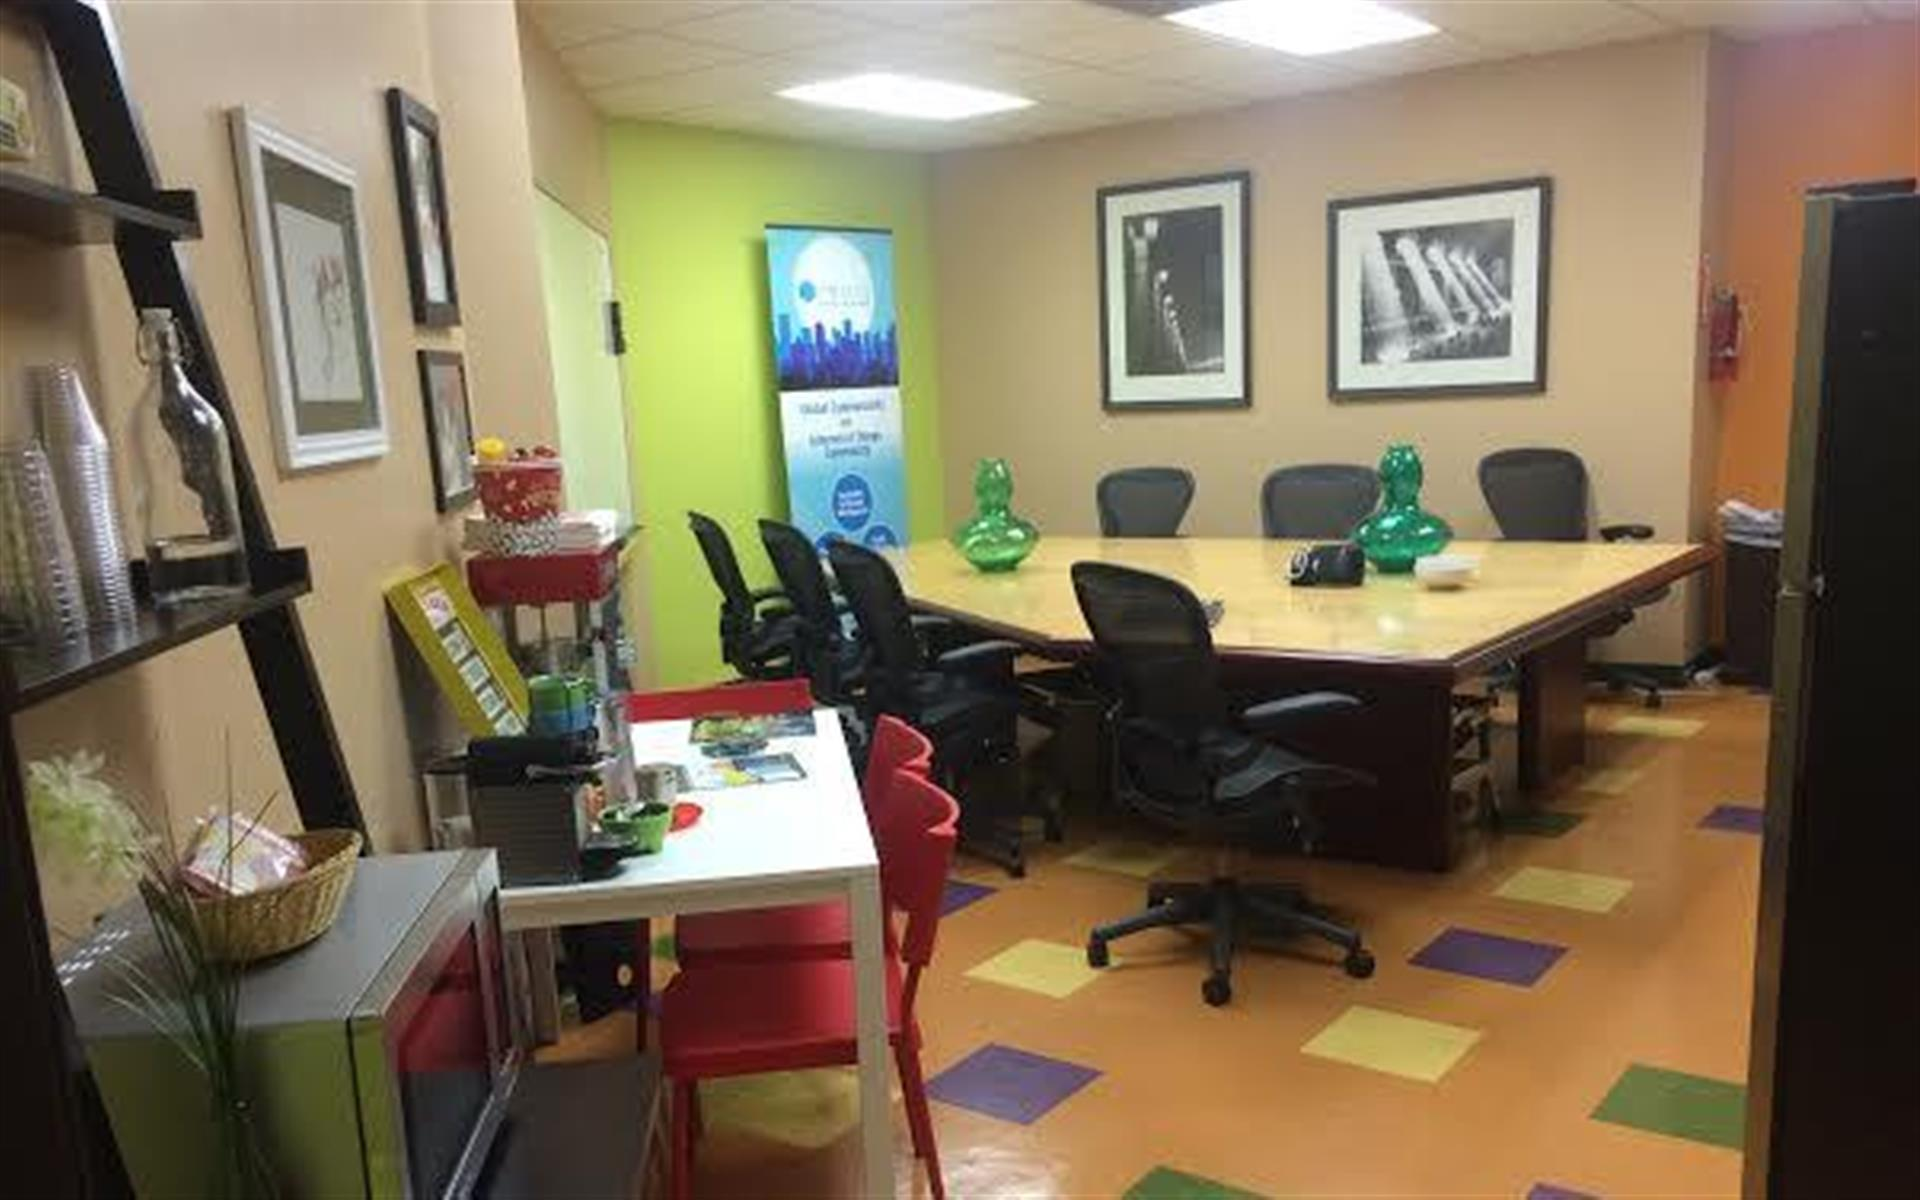 NEST CoWork (CyberTECH Community) - Conference space and kitchen